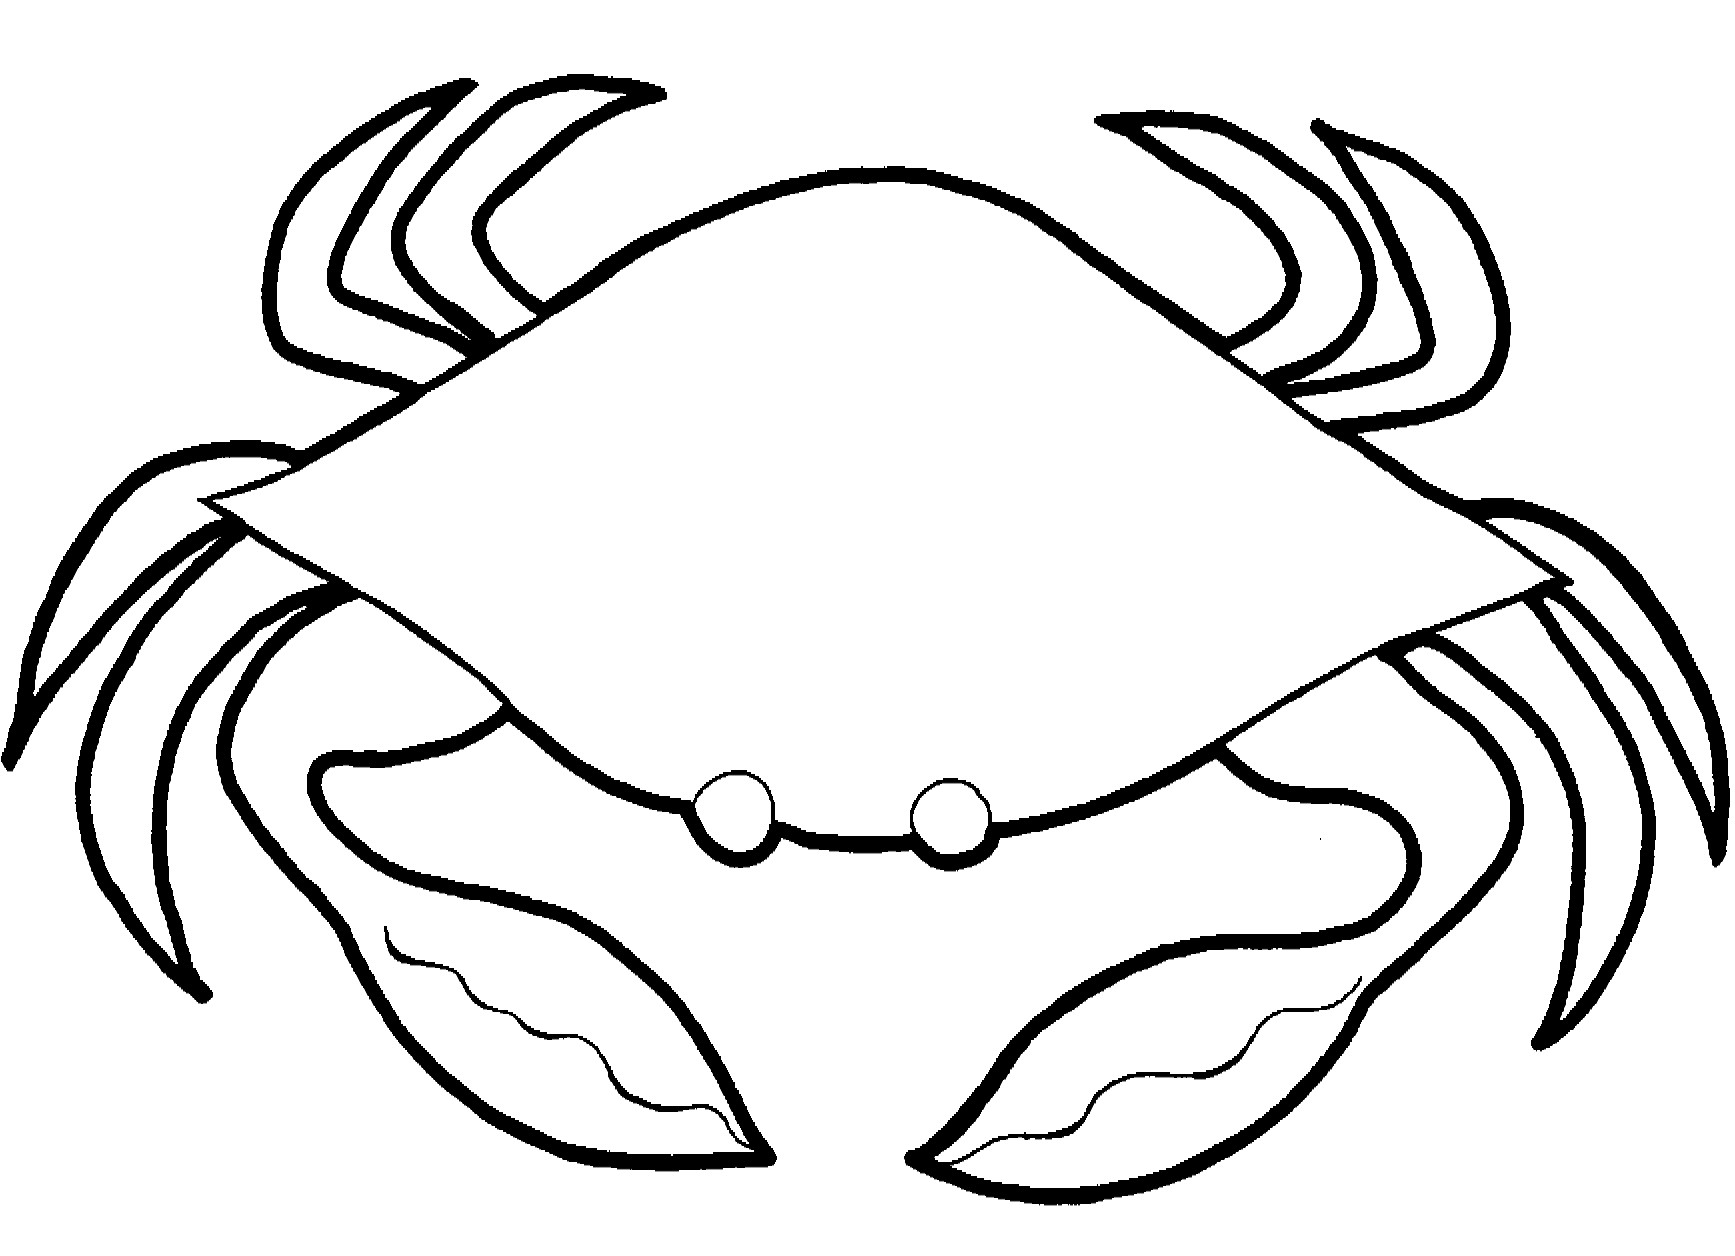 Crab Spider coloring #13, Download drawings